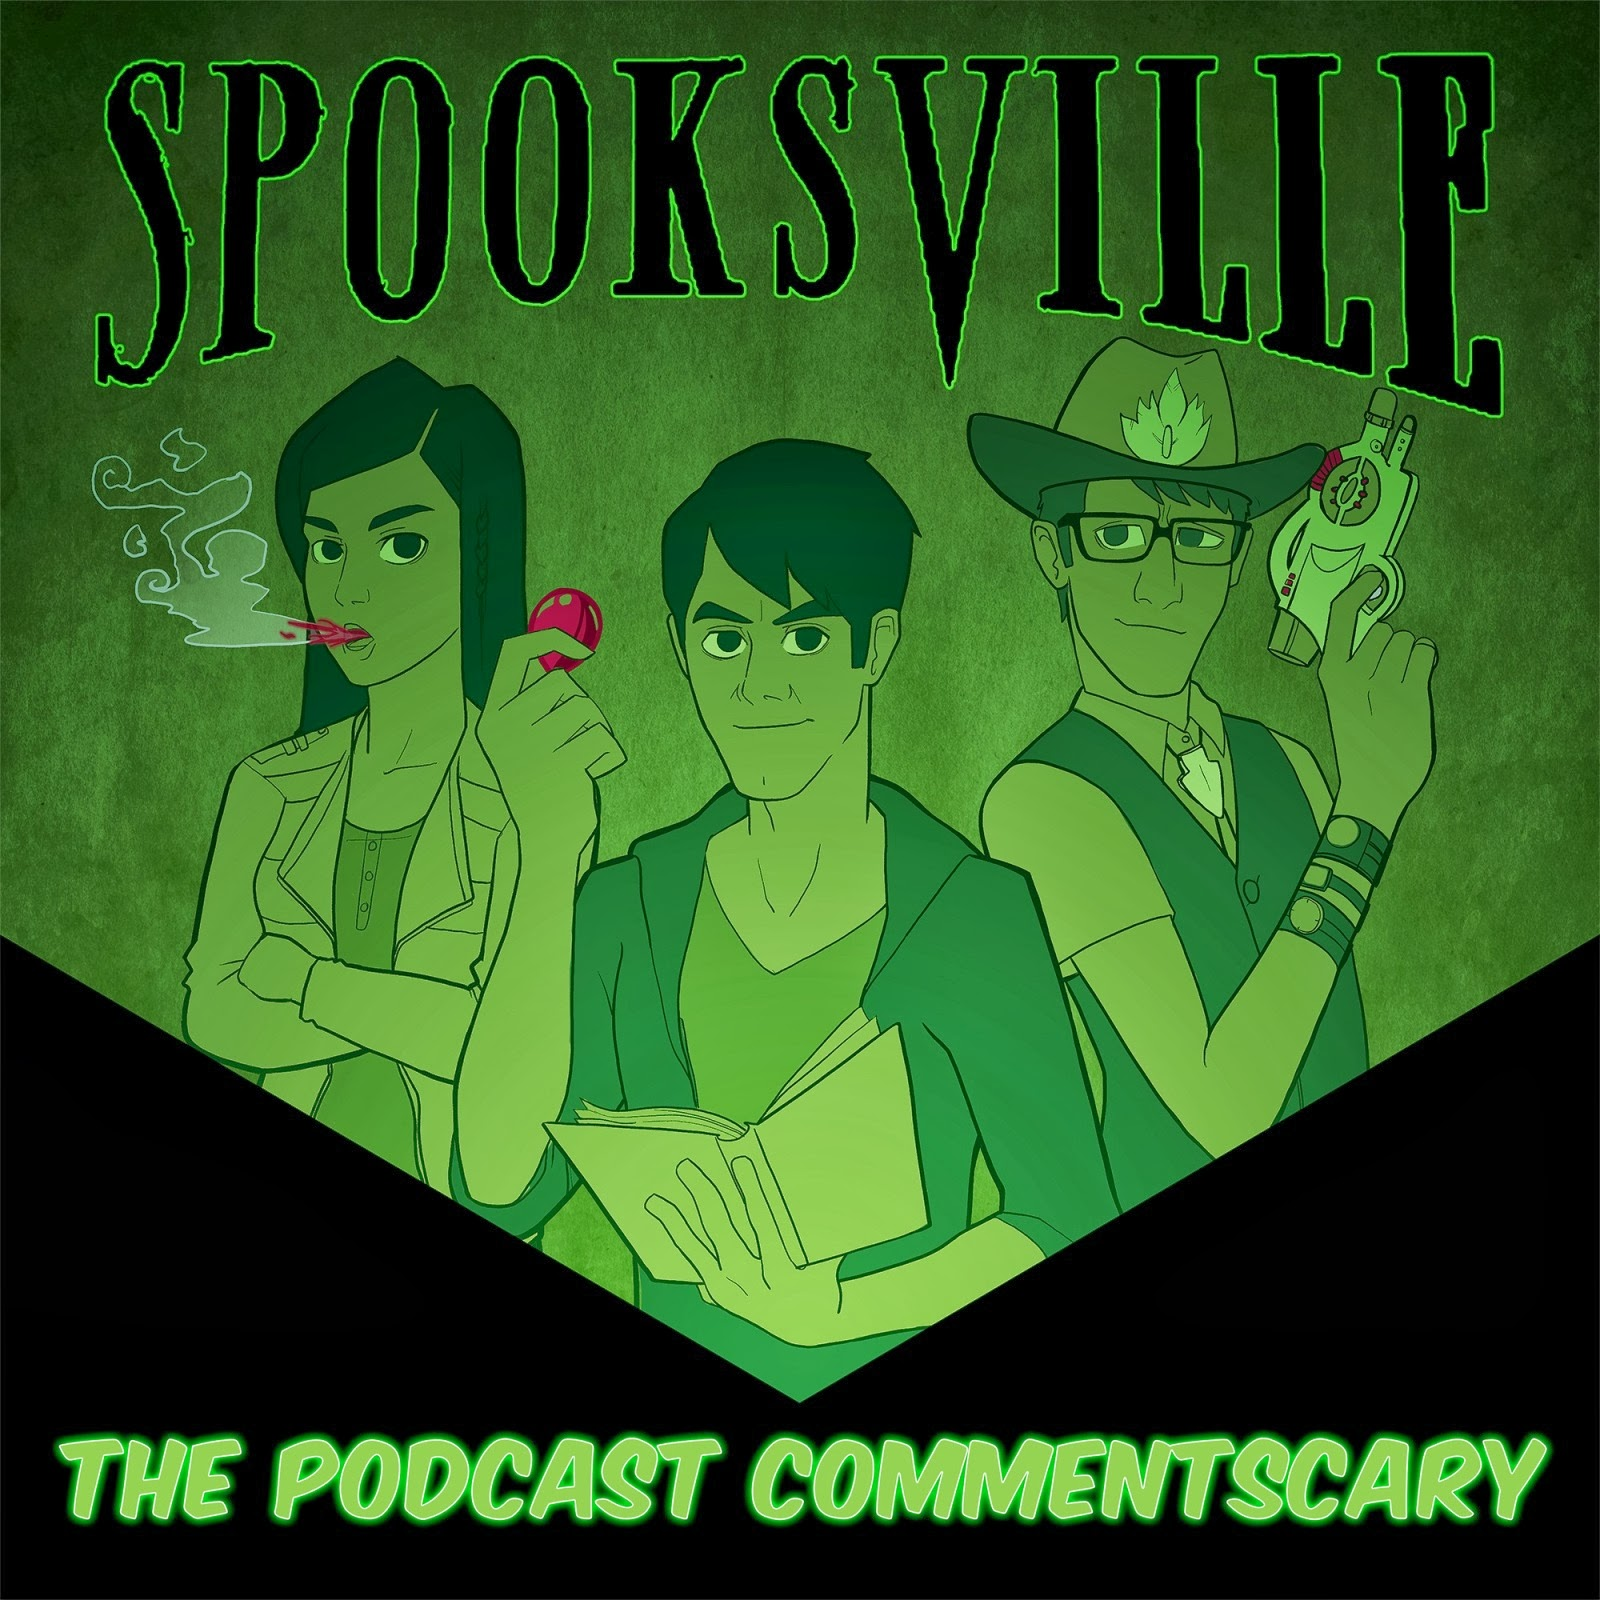 Spooksville - The Podcast Commentscary